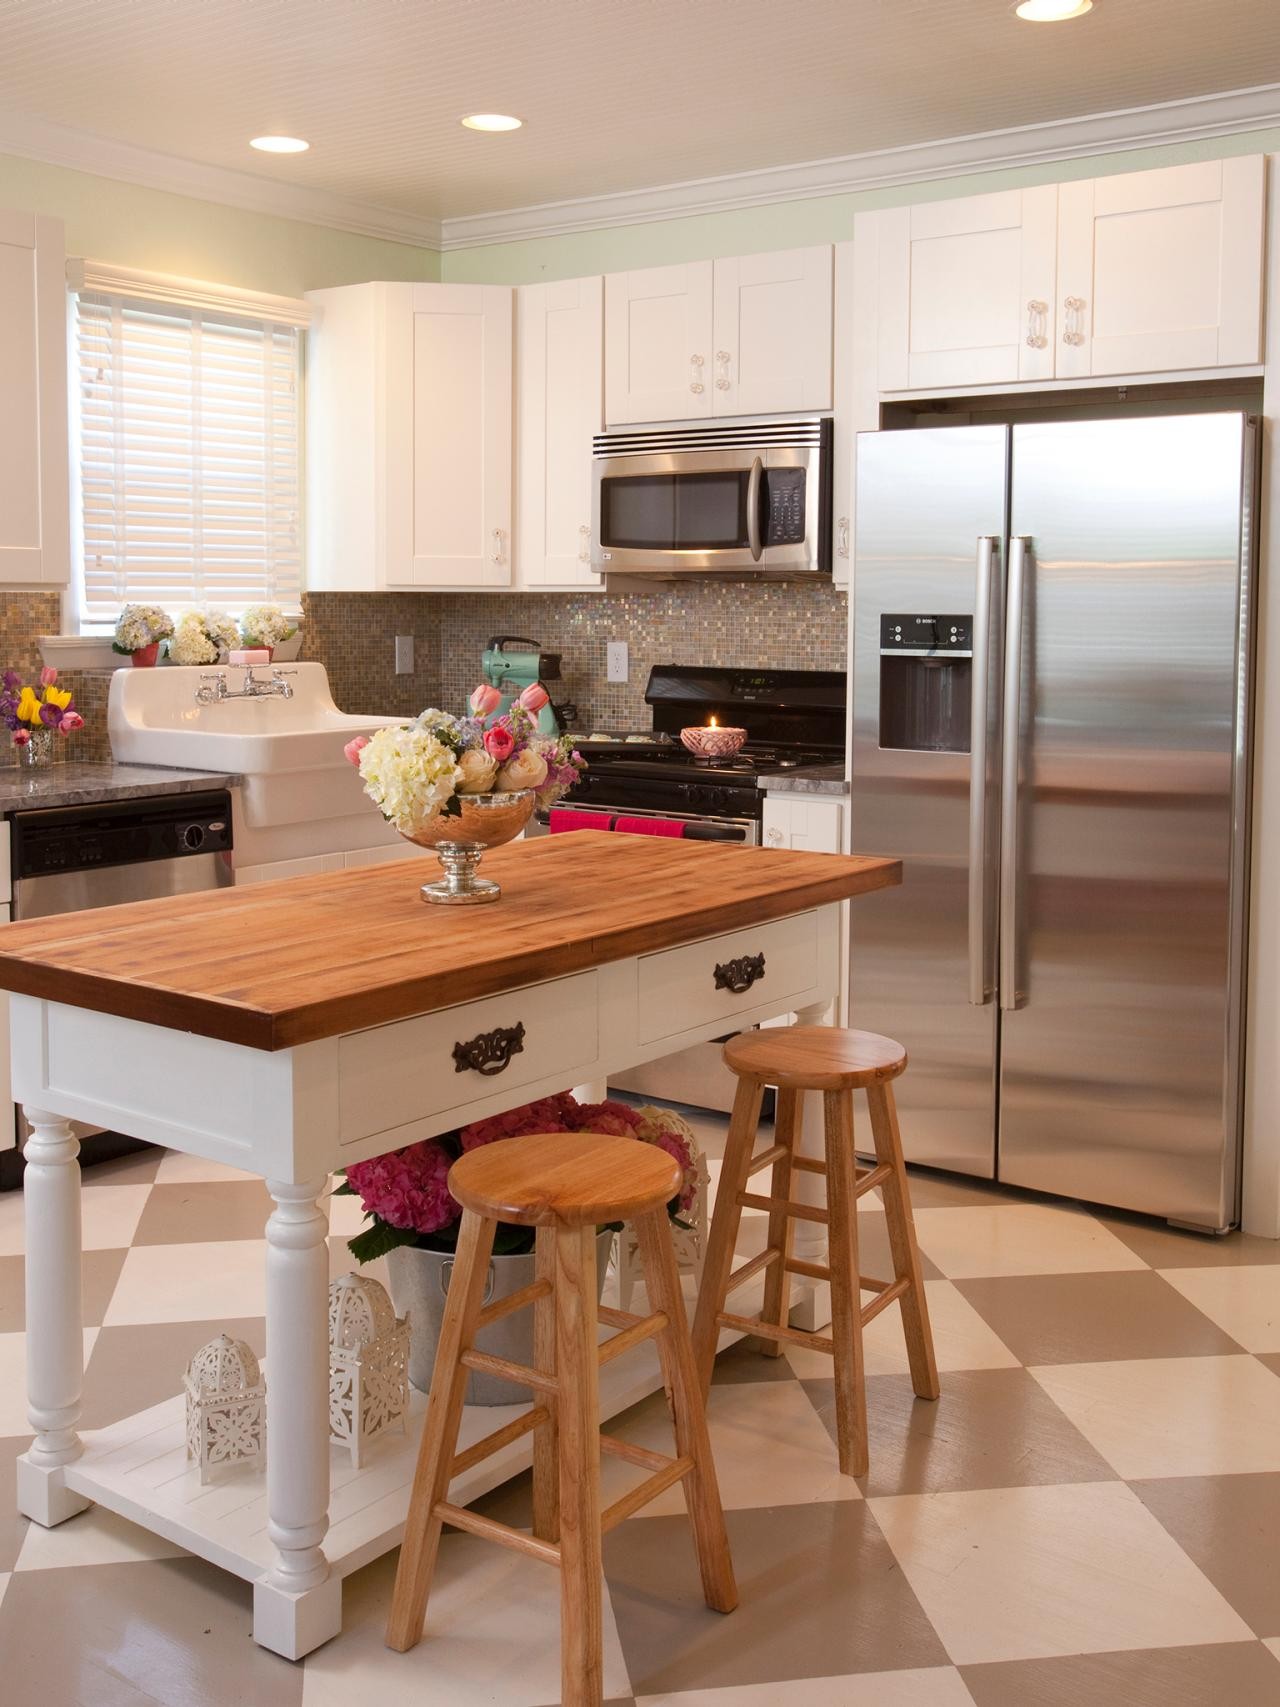 Small Kitchen Design Ideas small kitchen layouts: pictures, ideas & tips from hgtv | hgtv